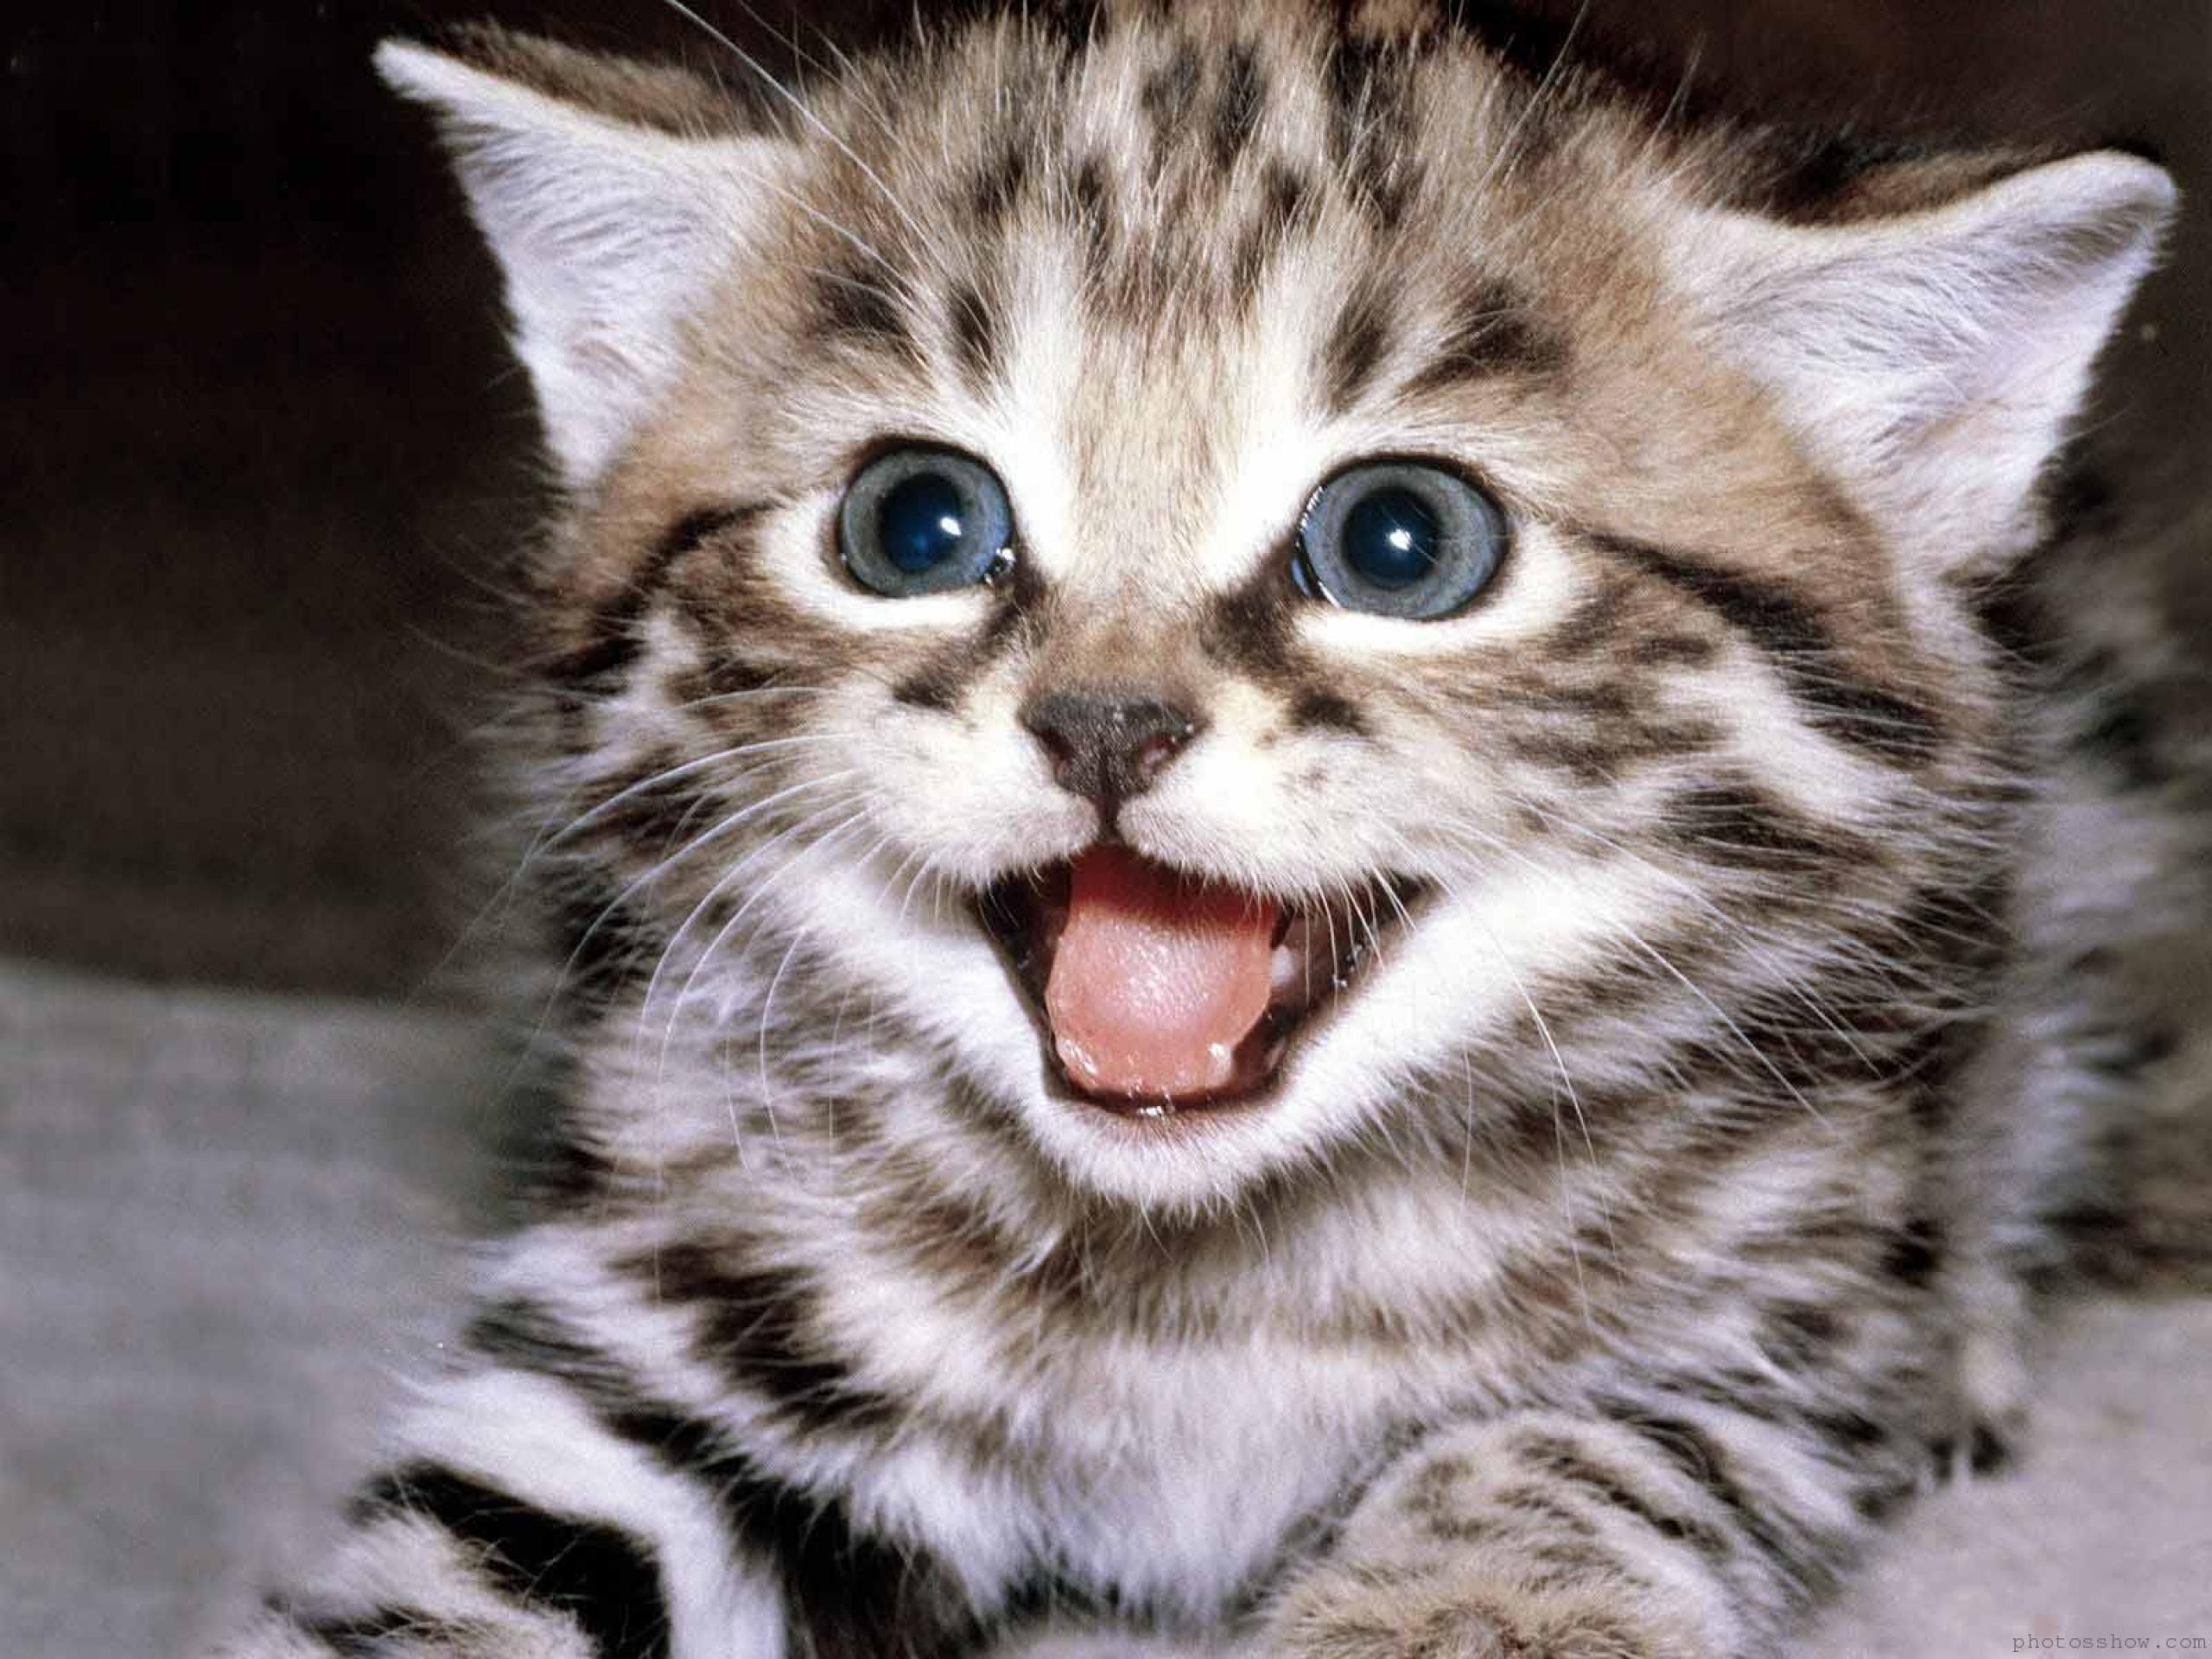 Cats Animals Kittens Faces Wallpaper 2560x1920 19284